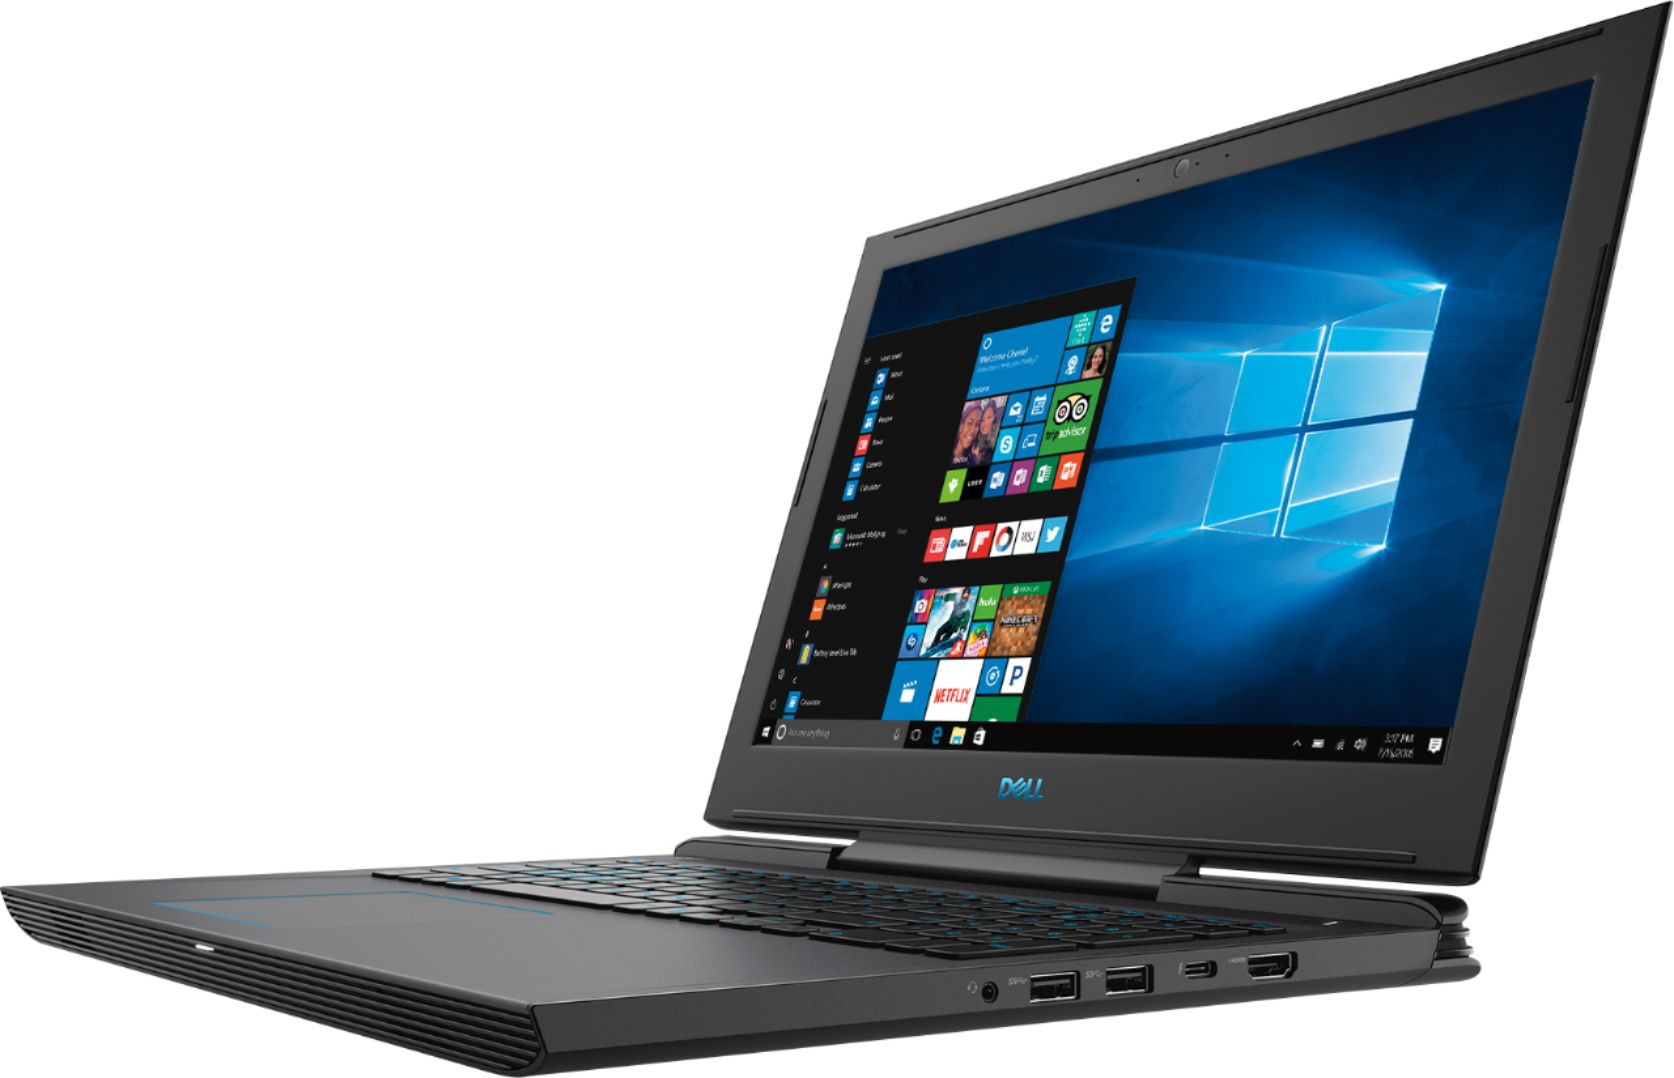 "Left Zoom. Dell - Geek Squad Certified Refurbished 15.6"" Laptop - Intel Core i7 - 16GB Memory - NVIDIA GeForce GTX 1060 - 128GB SSD+1TB HD - Licorice Black."